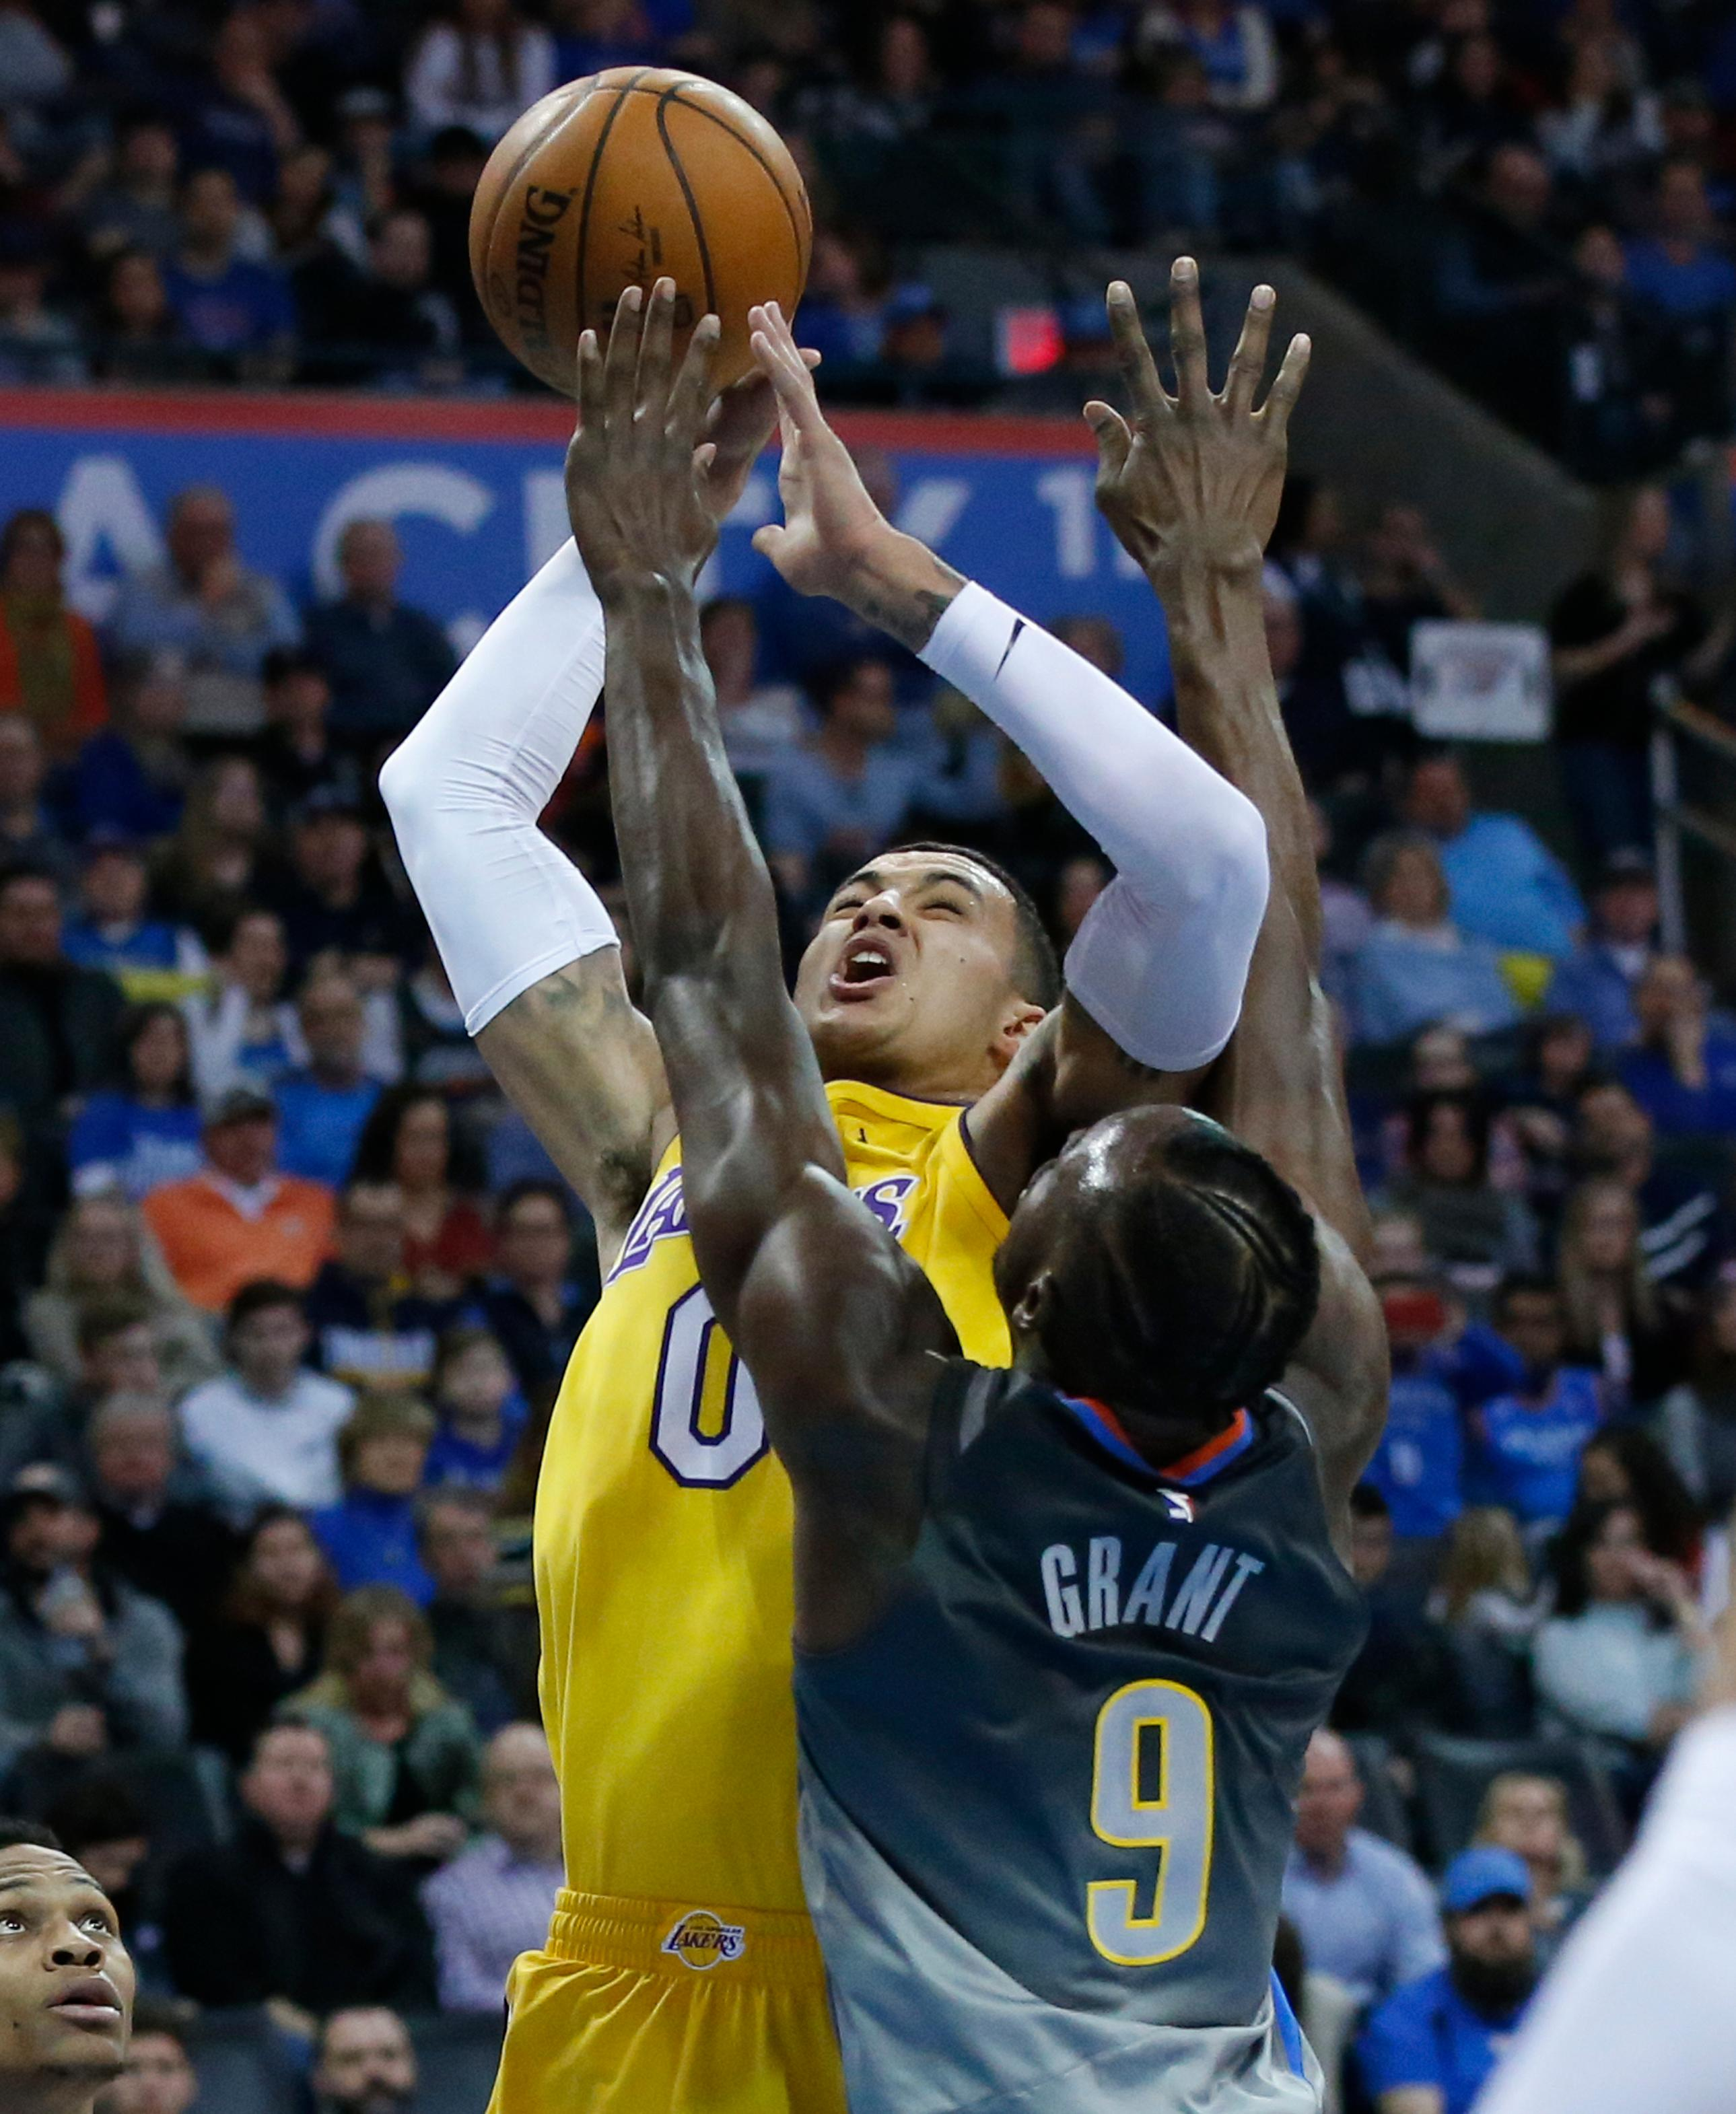 Los Angeles Lakers forward Kyle Kuzma (0) shoots as Oklahoma City Thunder forward Jerami Grant (9) defends in the first half of an NBA basketball game in Oklahoma City, Sunday, Feb. 4, 2018. (AP Photo/Sue Ogrocki)